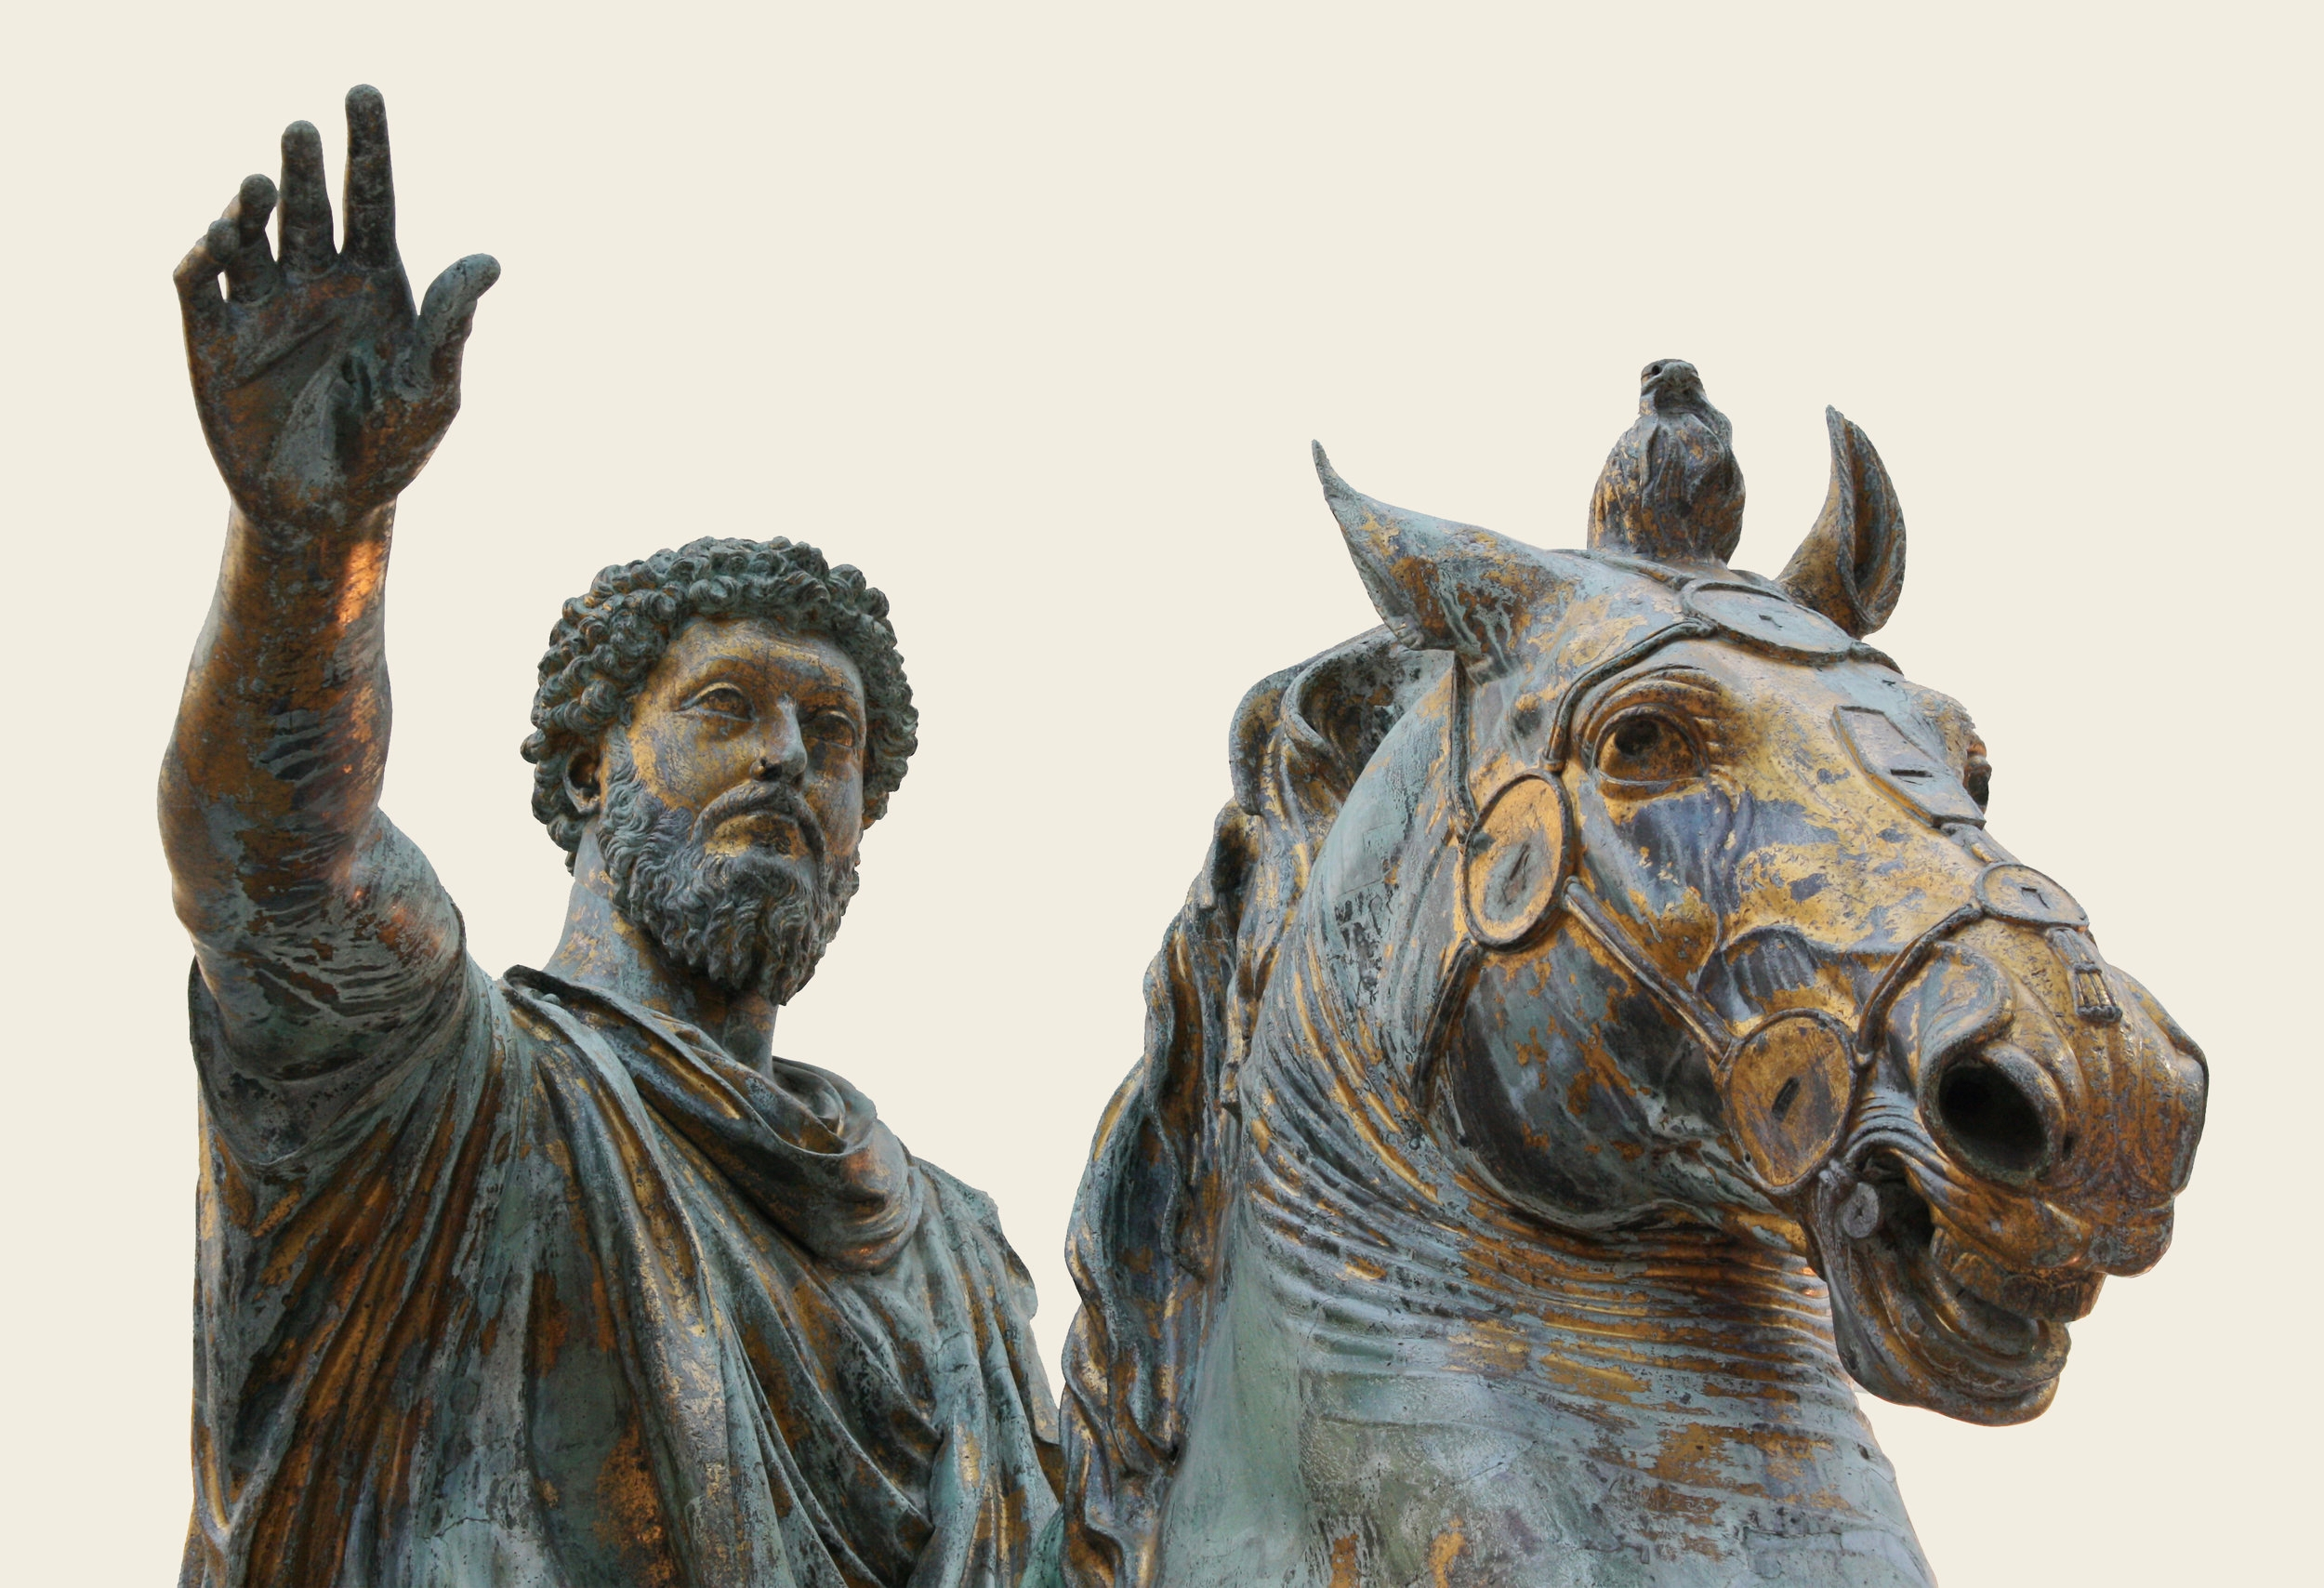 marcus aurelius - 121—180 CE, born in Rome, died in either Vindobona or Sirmium, two Roman provinces. The last of the so-called Five Good Emperors of Rome. Marc-A was a Stoic practitioner heavily influenced by Epictetus, and even though he borrowed extensively from his Stoic predecessor, his work known as Meditations is considered a significant source of our modern understanding of Stoic philosophy.Today I escaped anxiety, Or no, I discarded it, because it was within me, in my own perceptions—not outside.